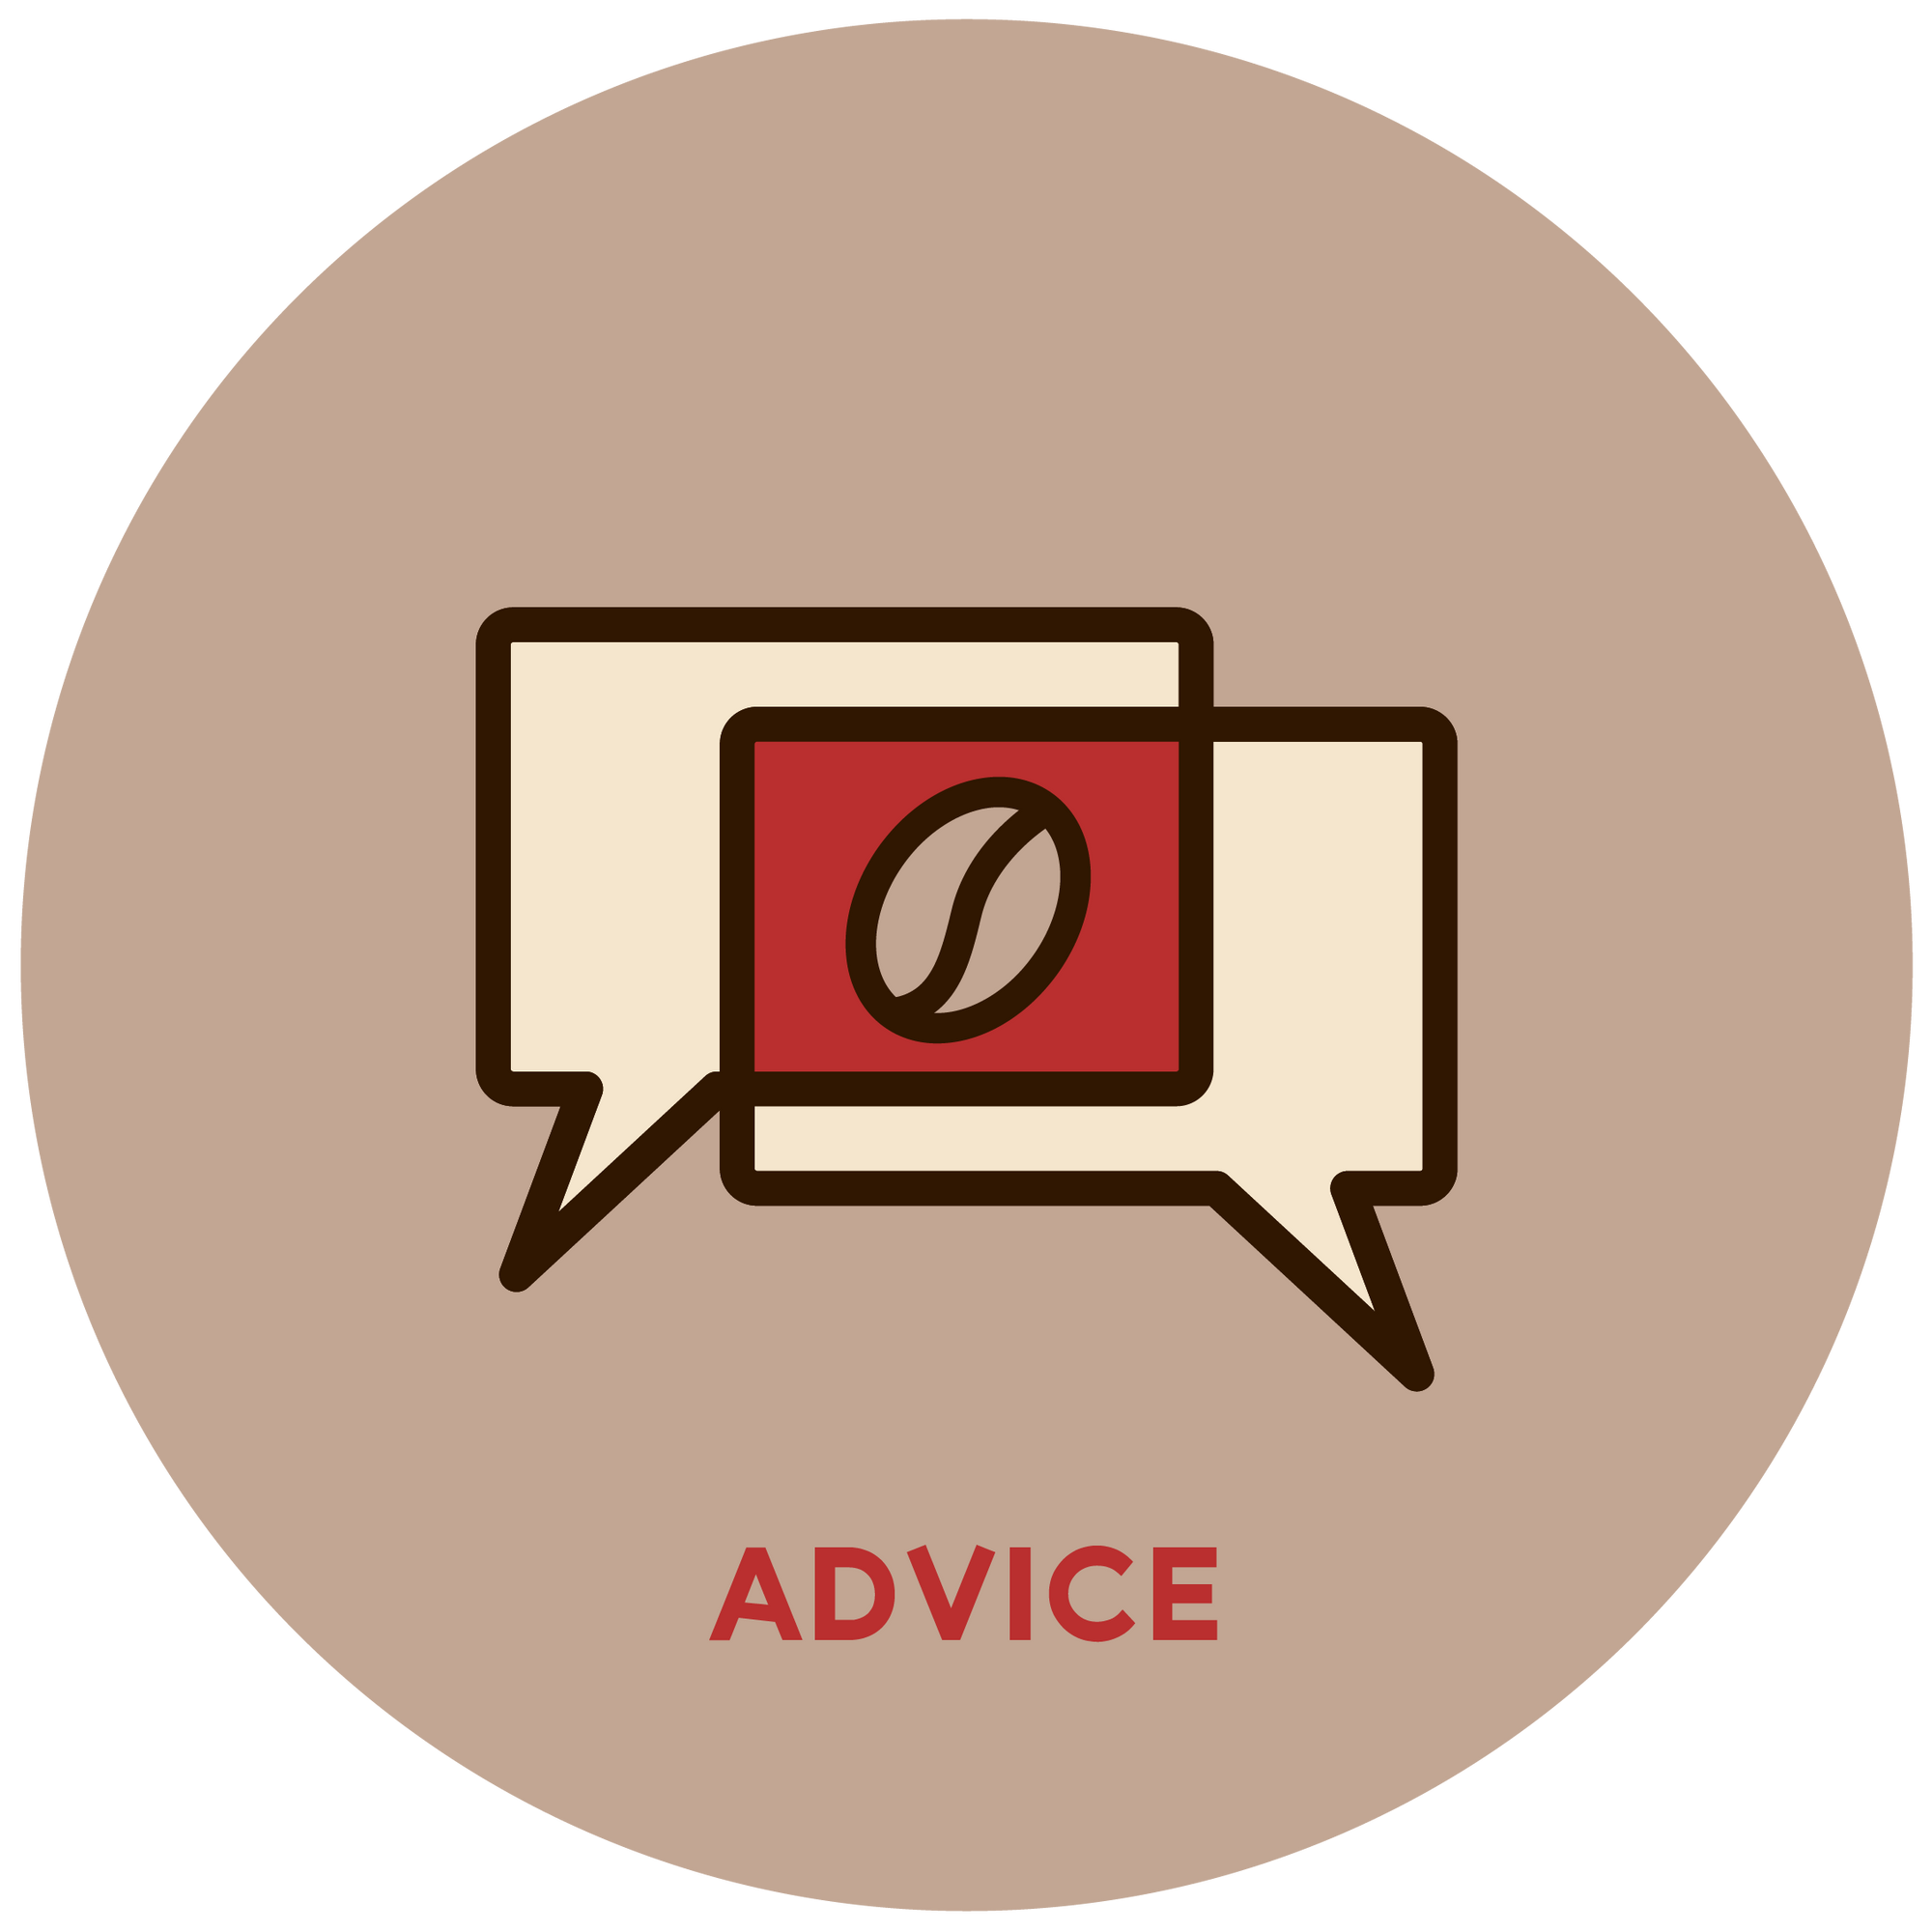 Espresso Canada logo showing they can offer advice when purchasing an espresso machine